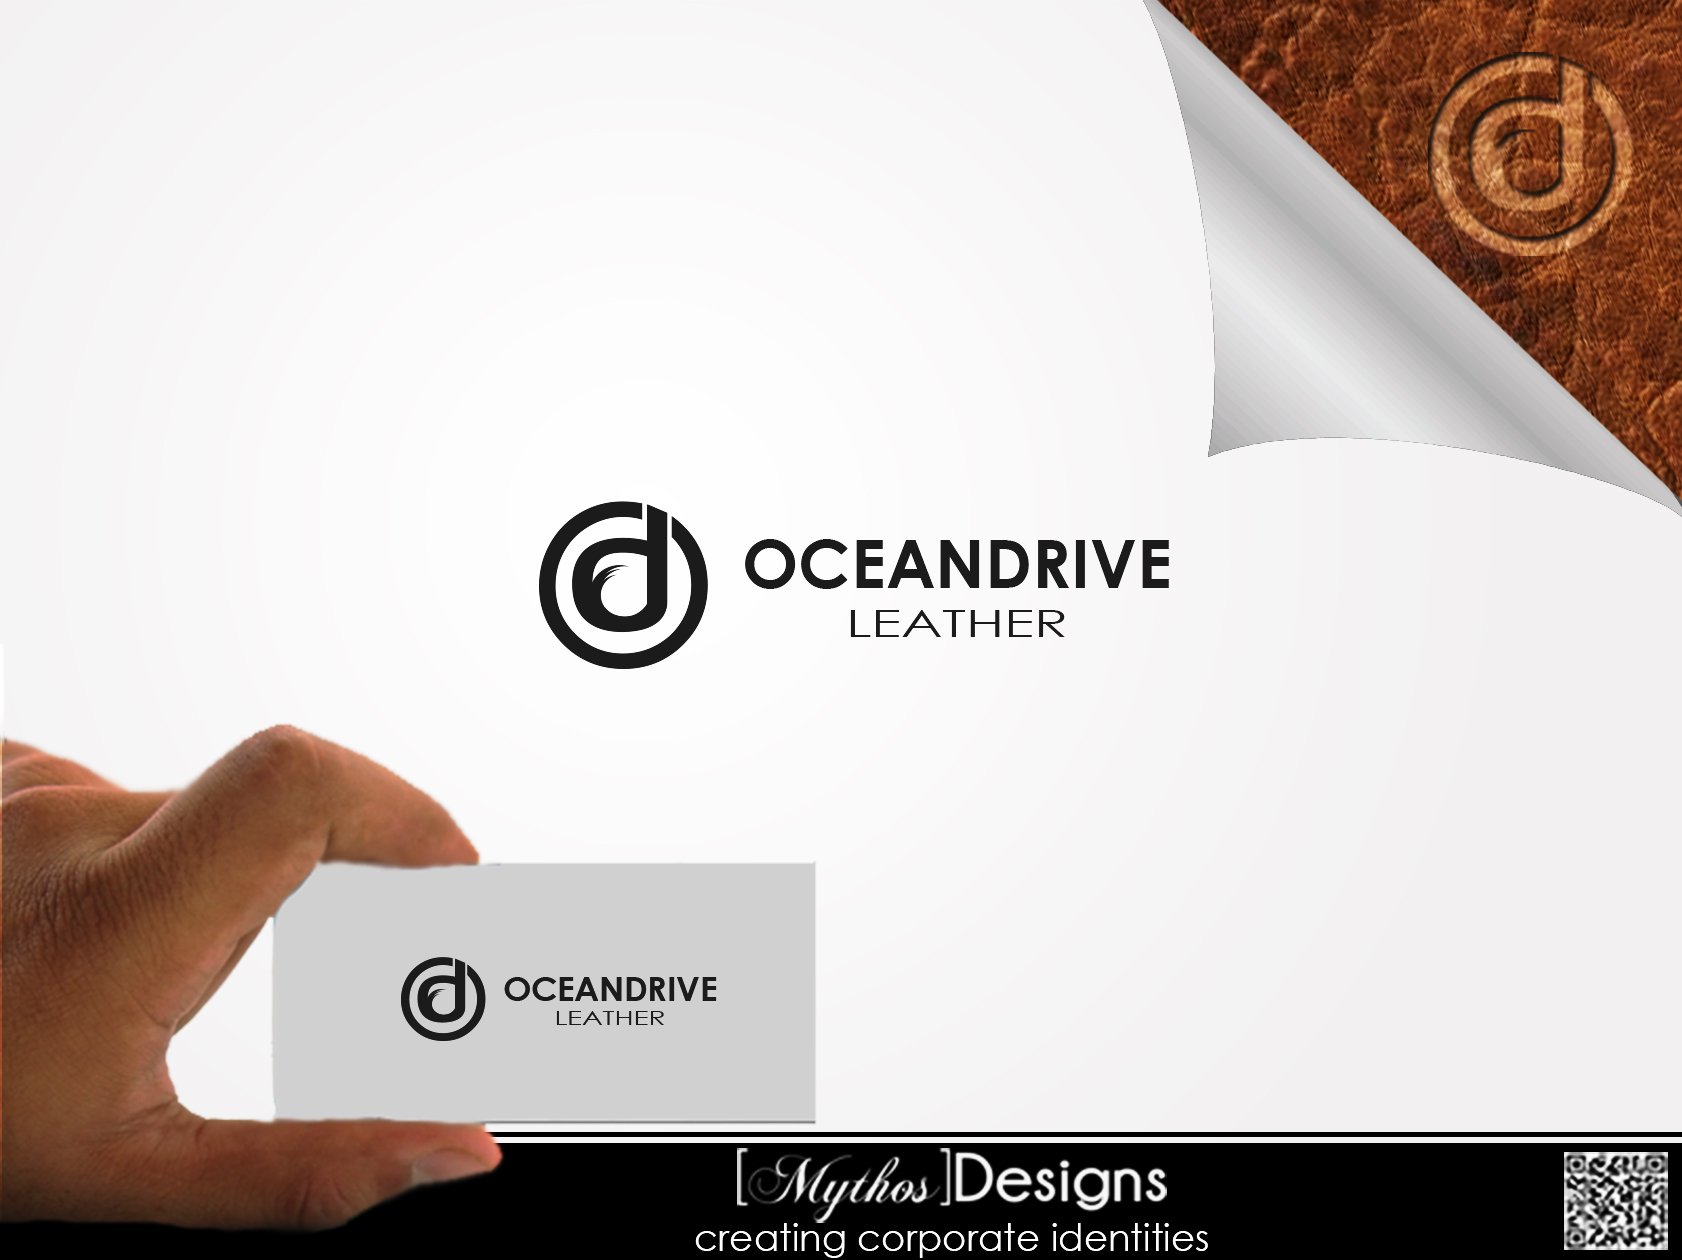 Logo Design by Mythos Designs - Entry No. 10 in the Logo Design Contest Captivating Logo Design for Oceandrive Leather.